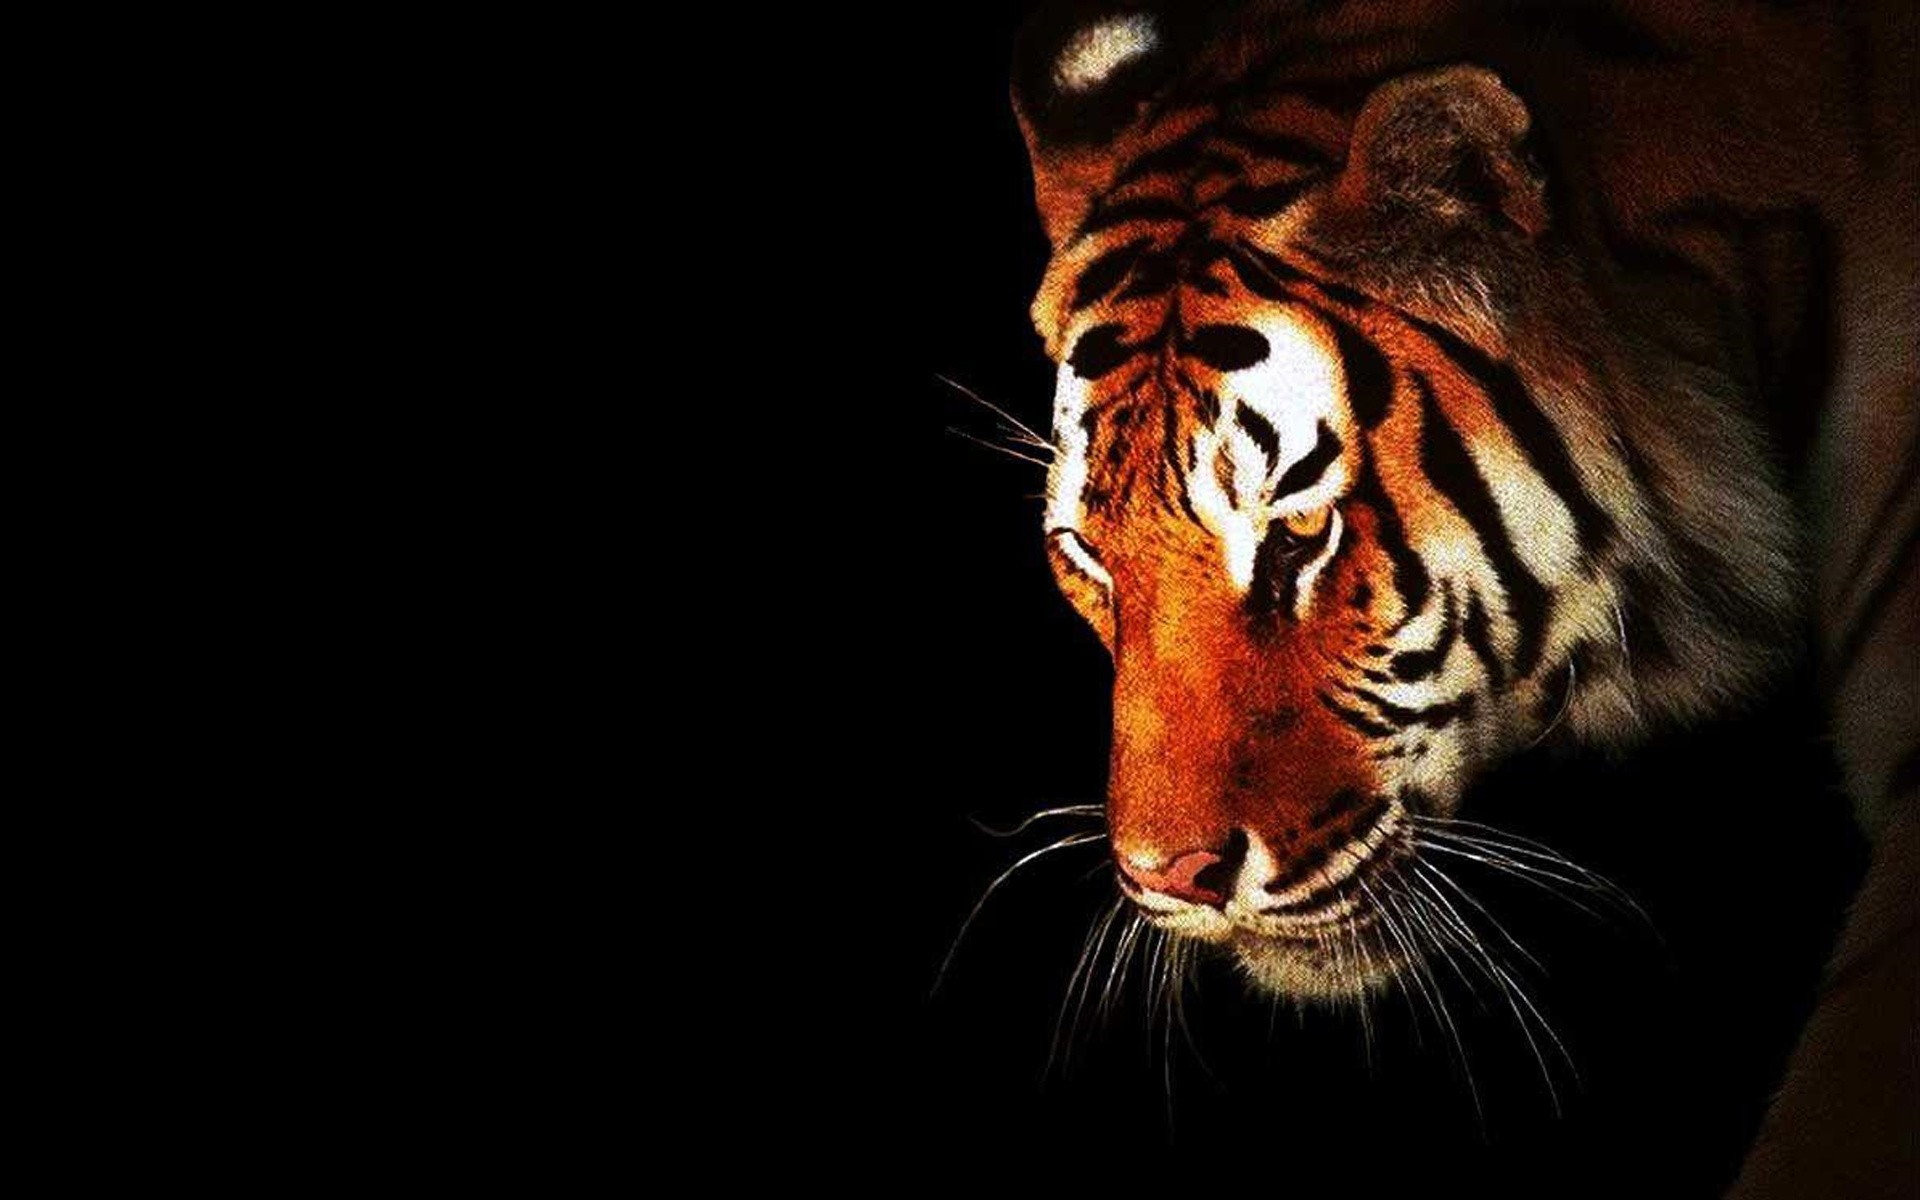 tiger background wallpaper #13